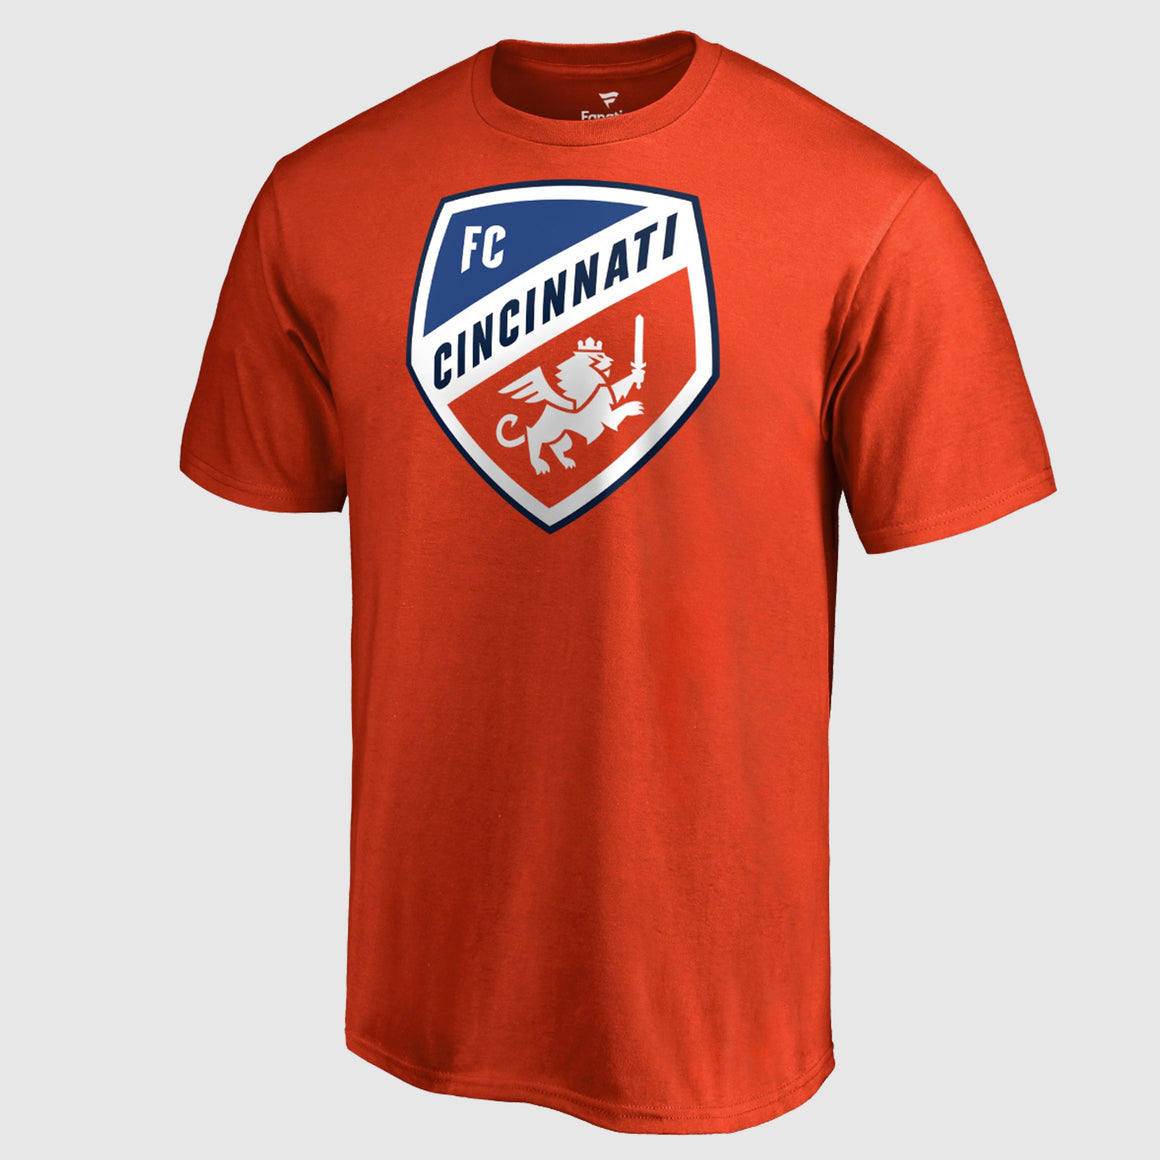 Official FC Cincinnati Dark Orange Primary Crest Logo T-shirt